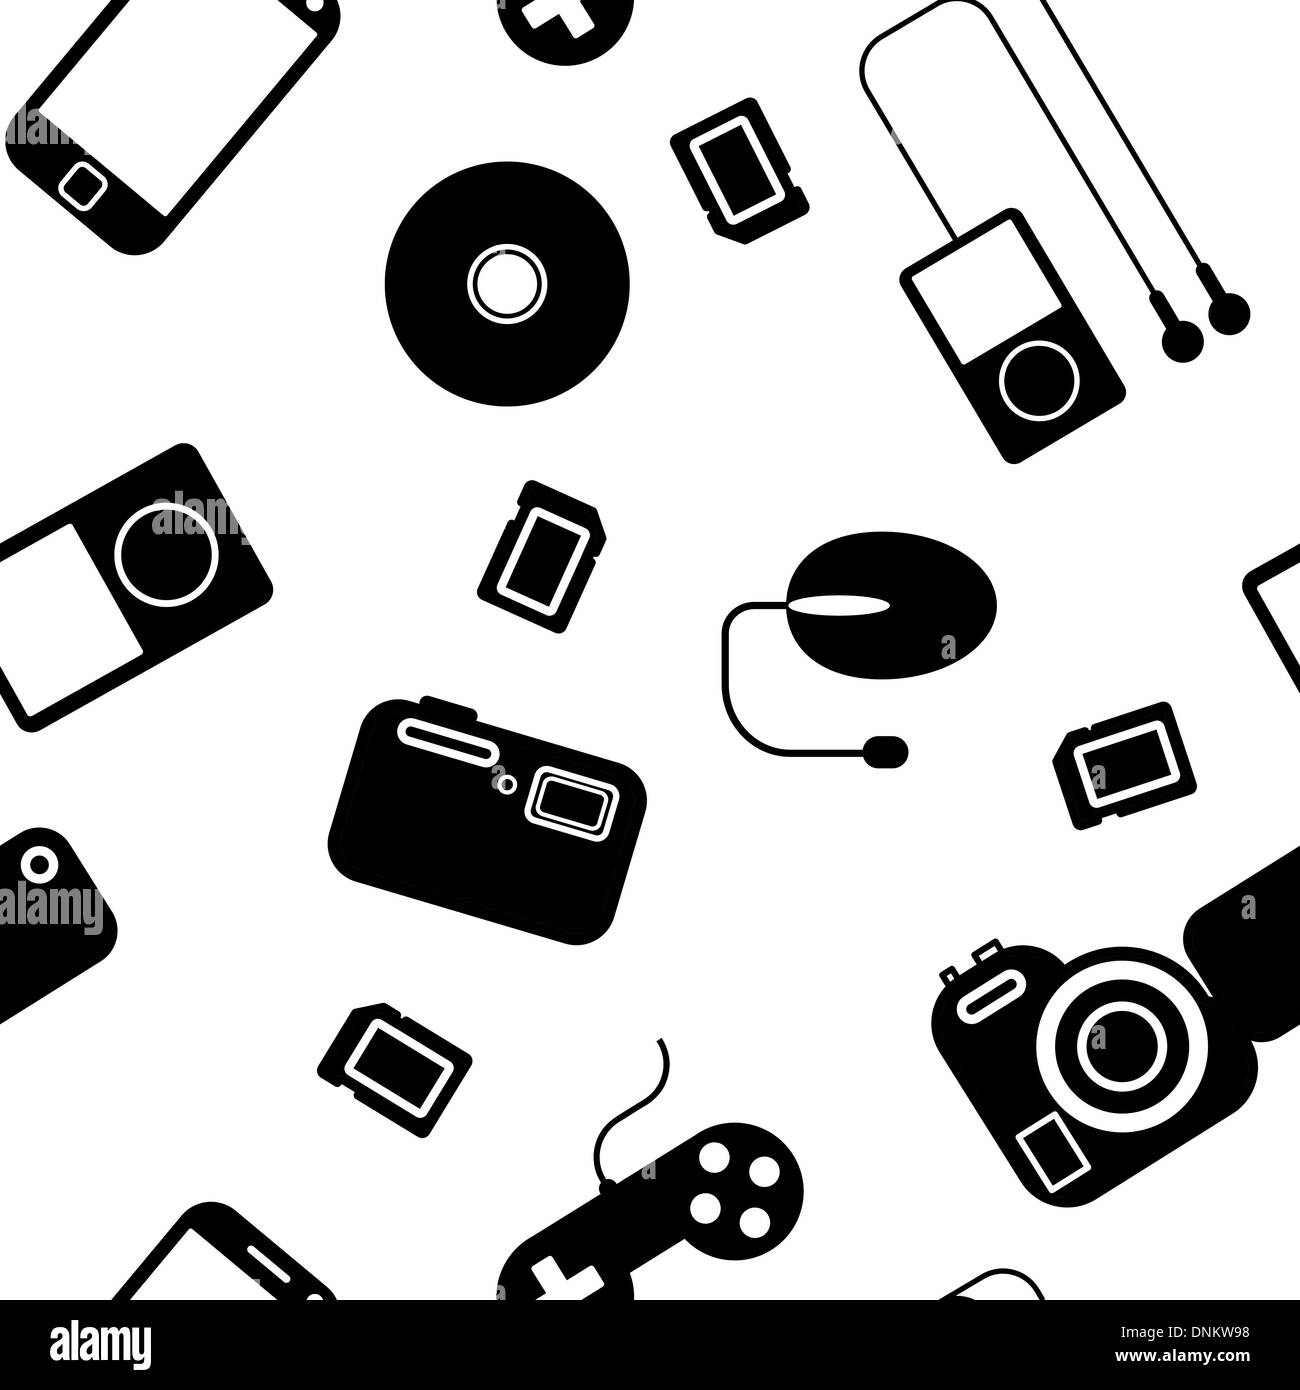 Seamless background Icon  with  electronic gadgets. Could be used as seamless wallpaper, textile, wrapping paper - Stock Image